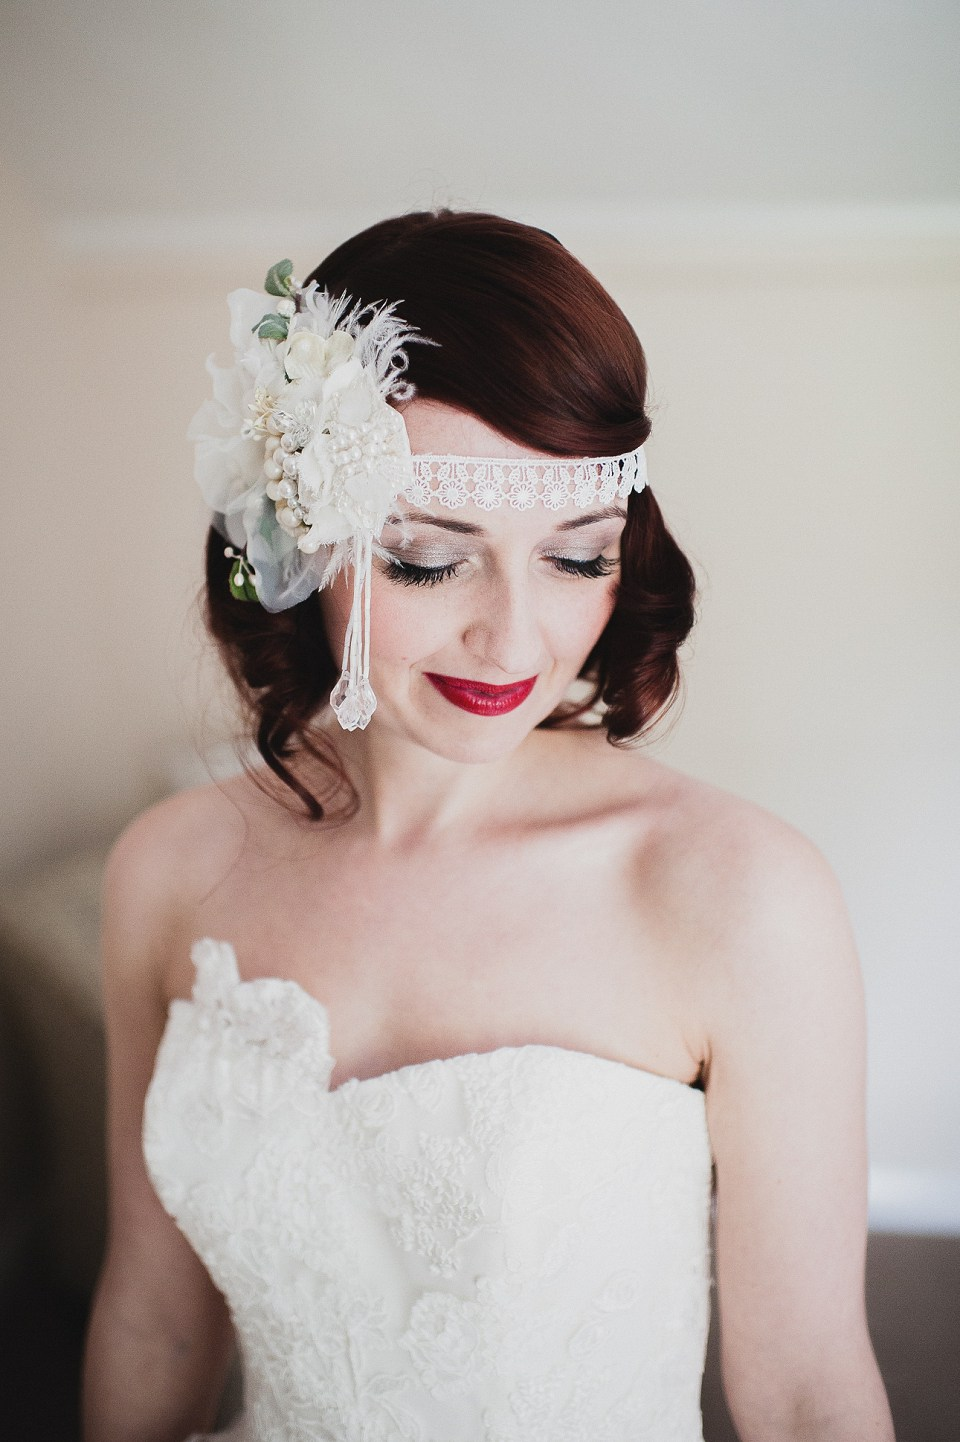 beautiful bridal hair & makeup from lipstick & curls (uk wide